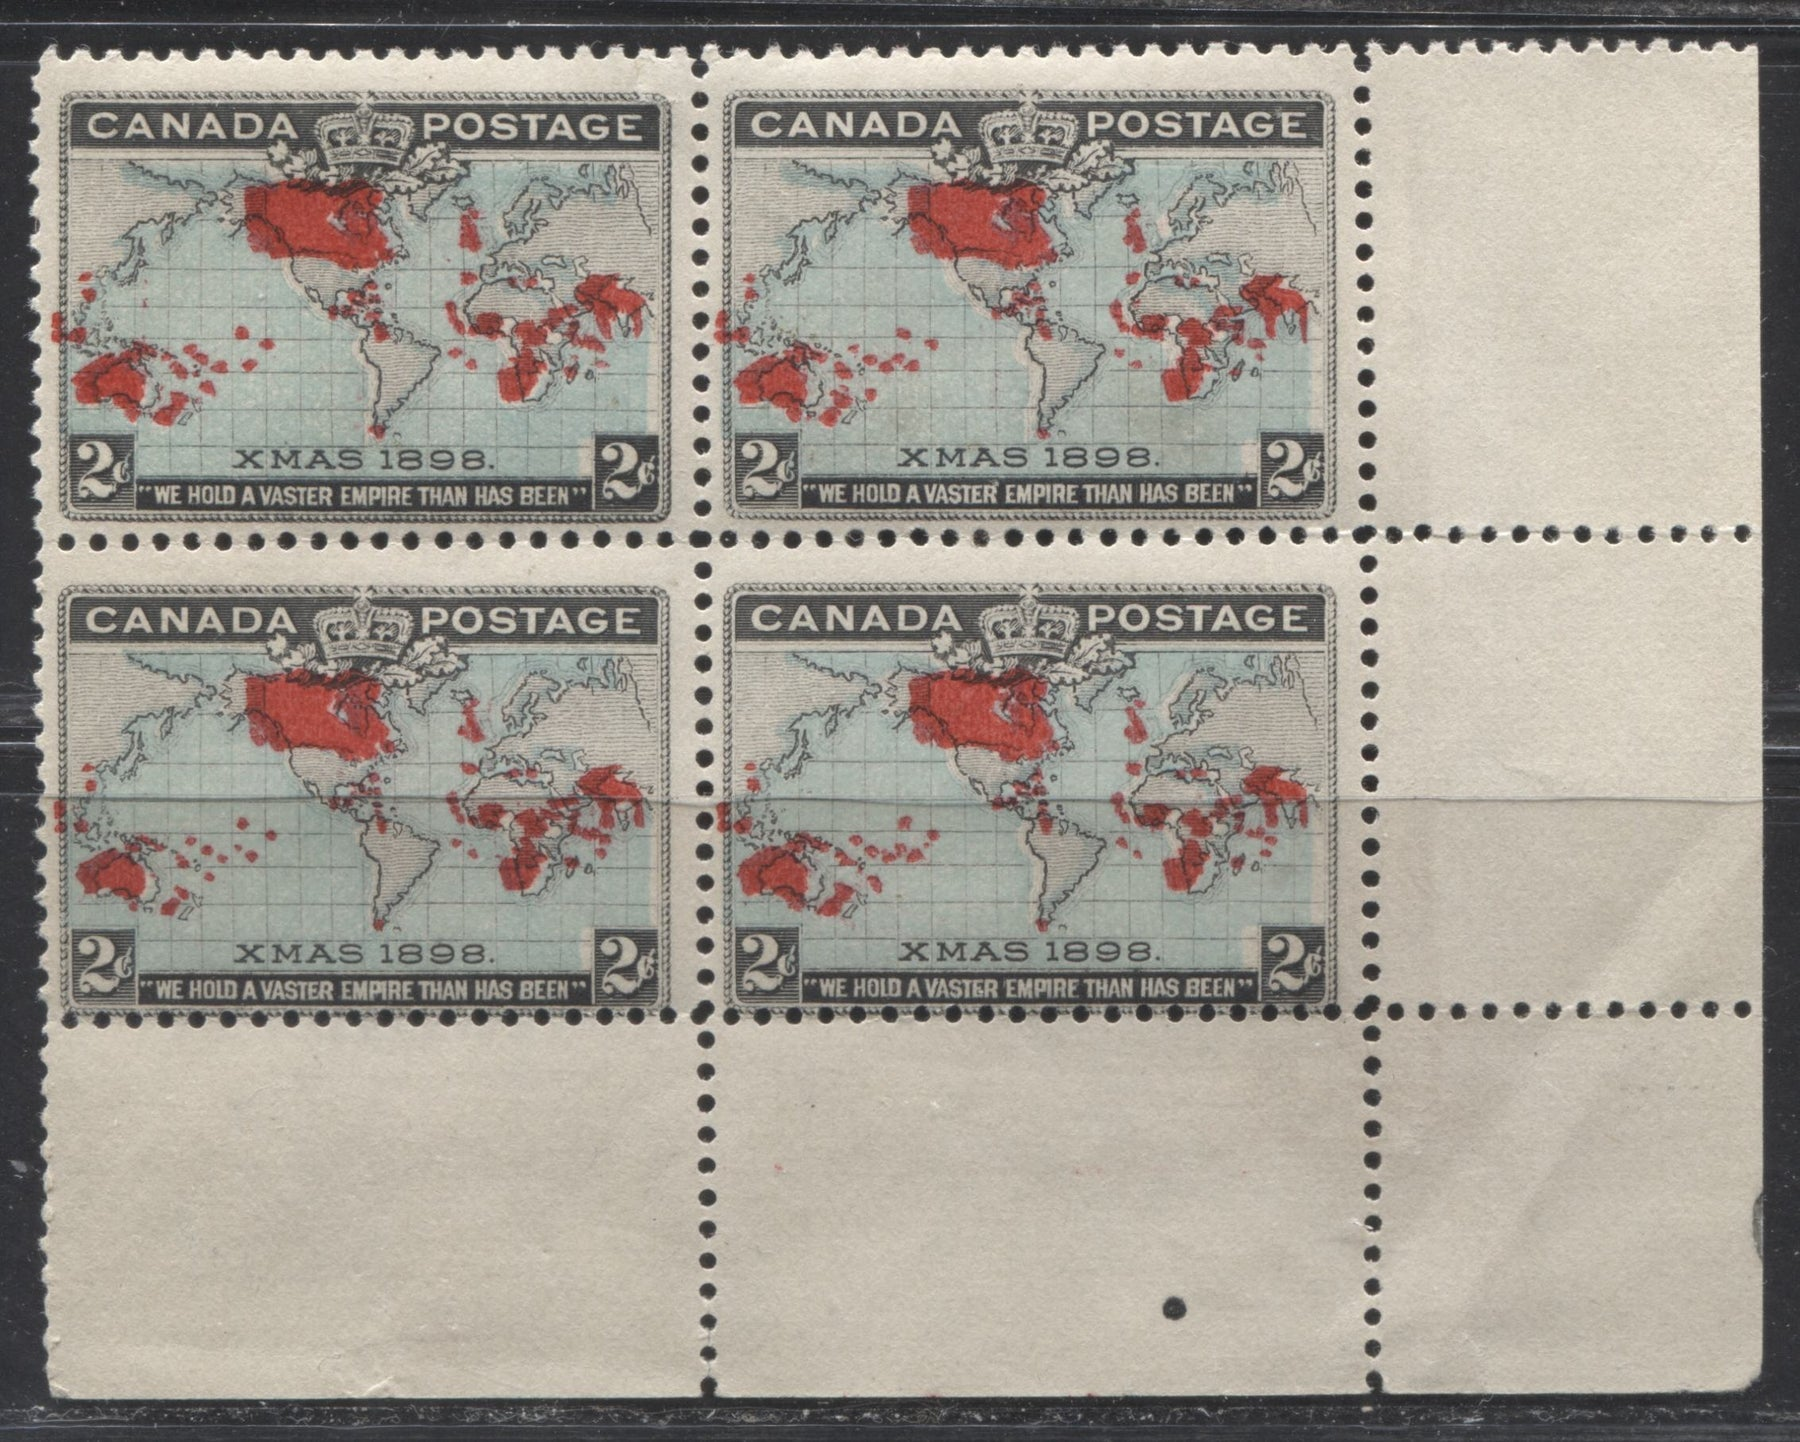 Canada #86 2c Greenish Blue, Black and Carmine, Mercator Projection 1898 Imperial Penny Postage Issue, a Fine OG Corner Block Containing the Position 89 Re-Entry